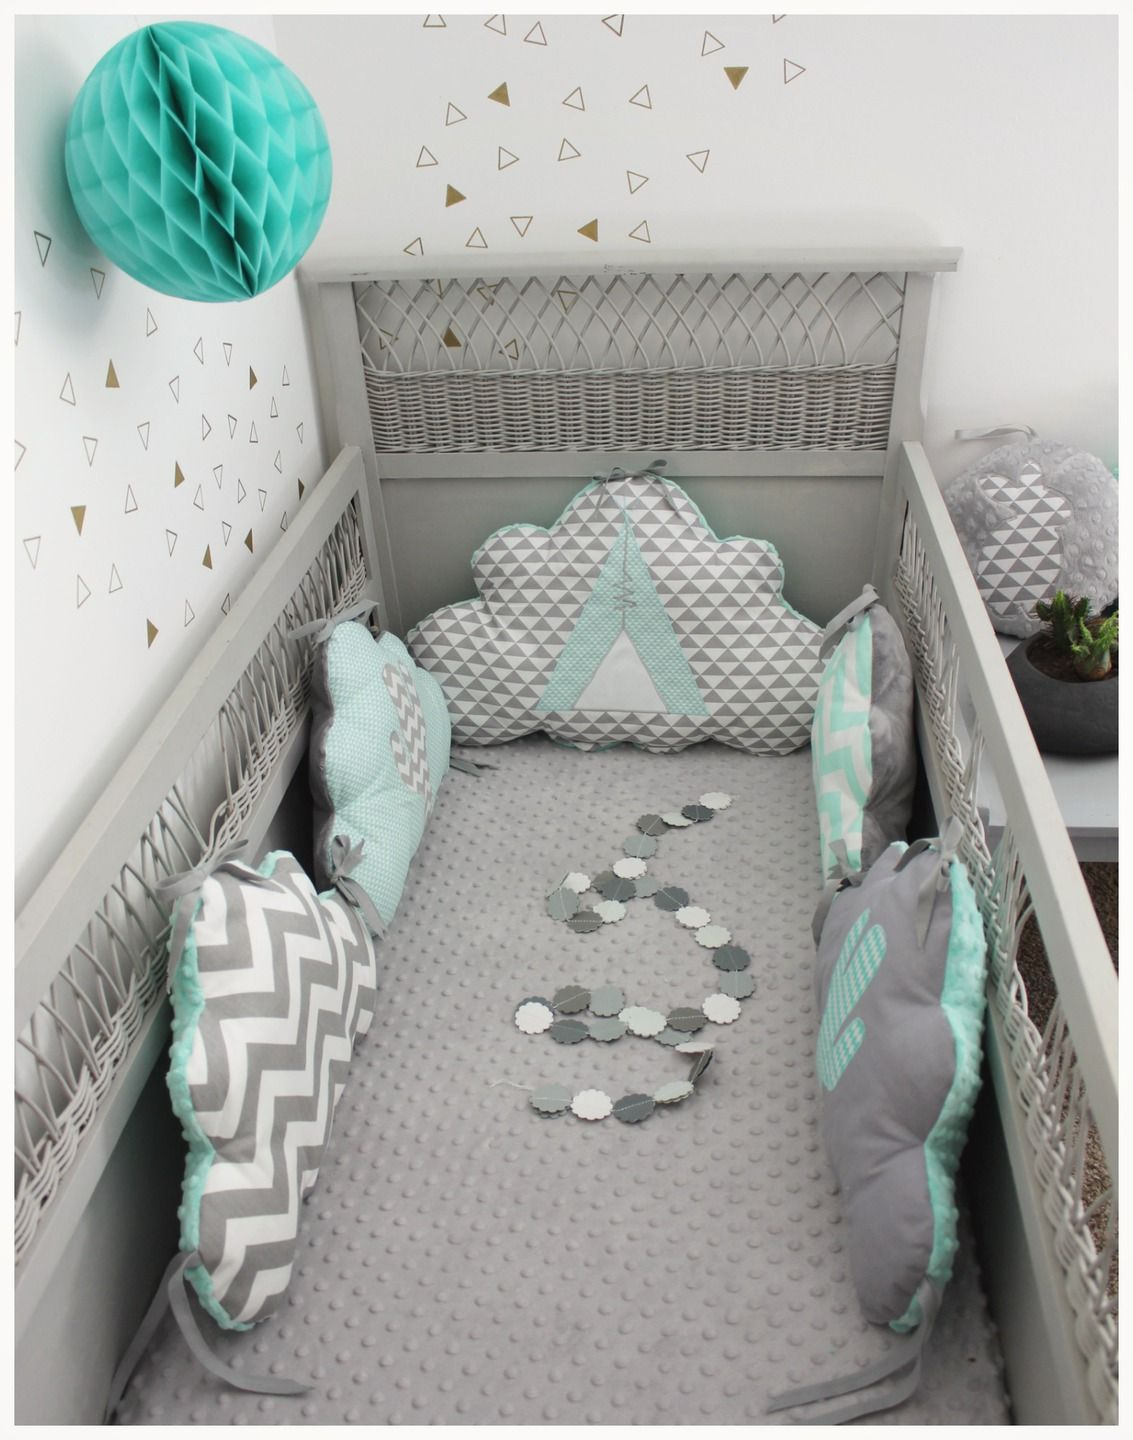 tour de lit nuage th me tipi et cactus vert d 39 eau et gris clair baby pinterest quartos. Black Bedroom Furniture Sets. Home Design Ideas